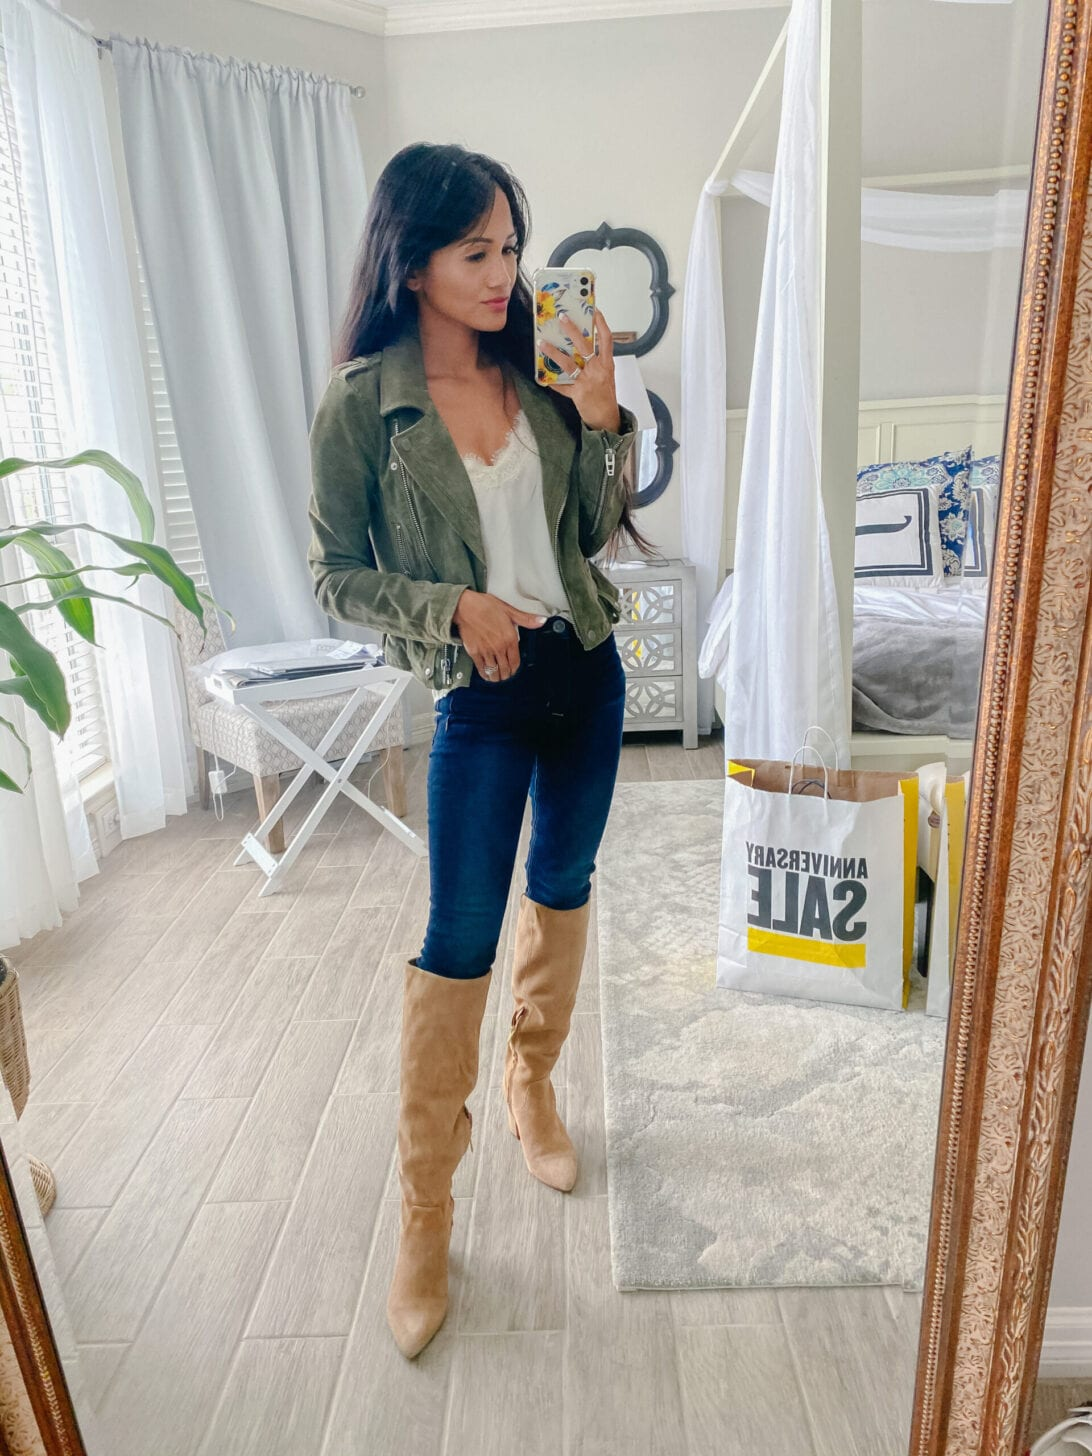 vince Camuto boots, BLANK NYC suede jacket